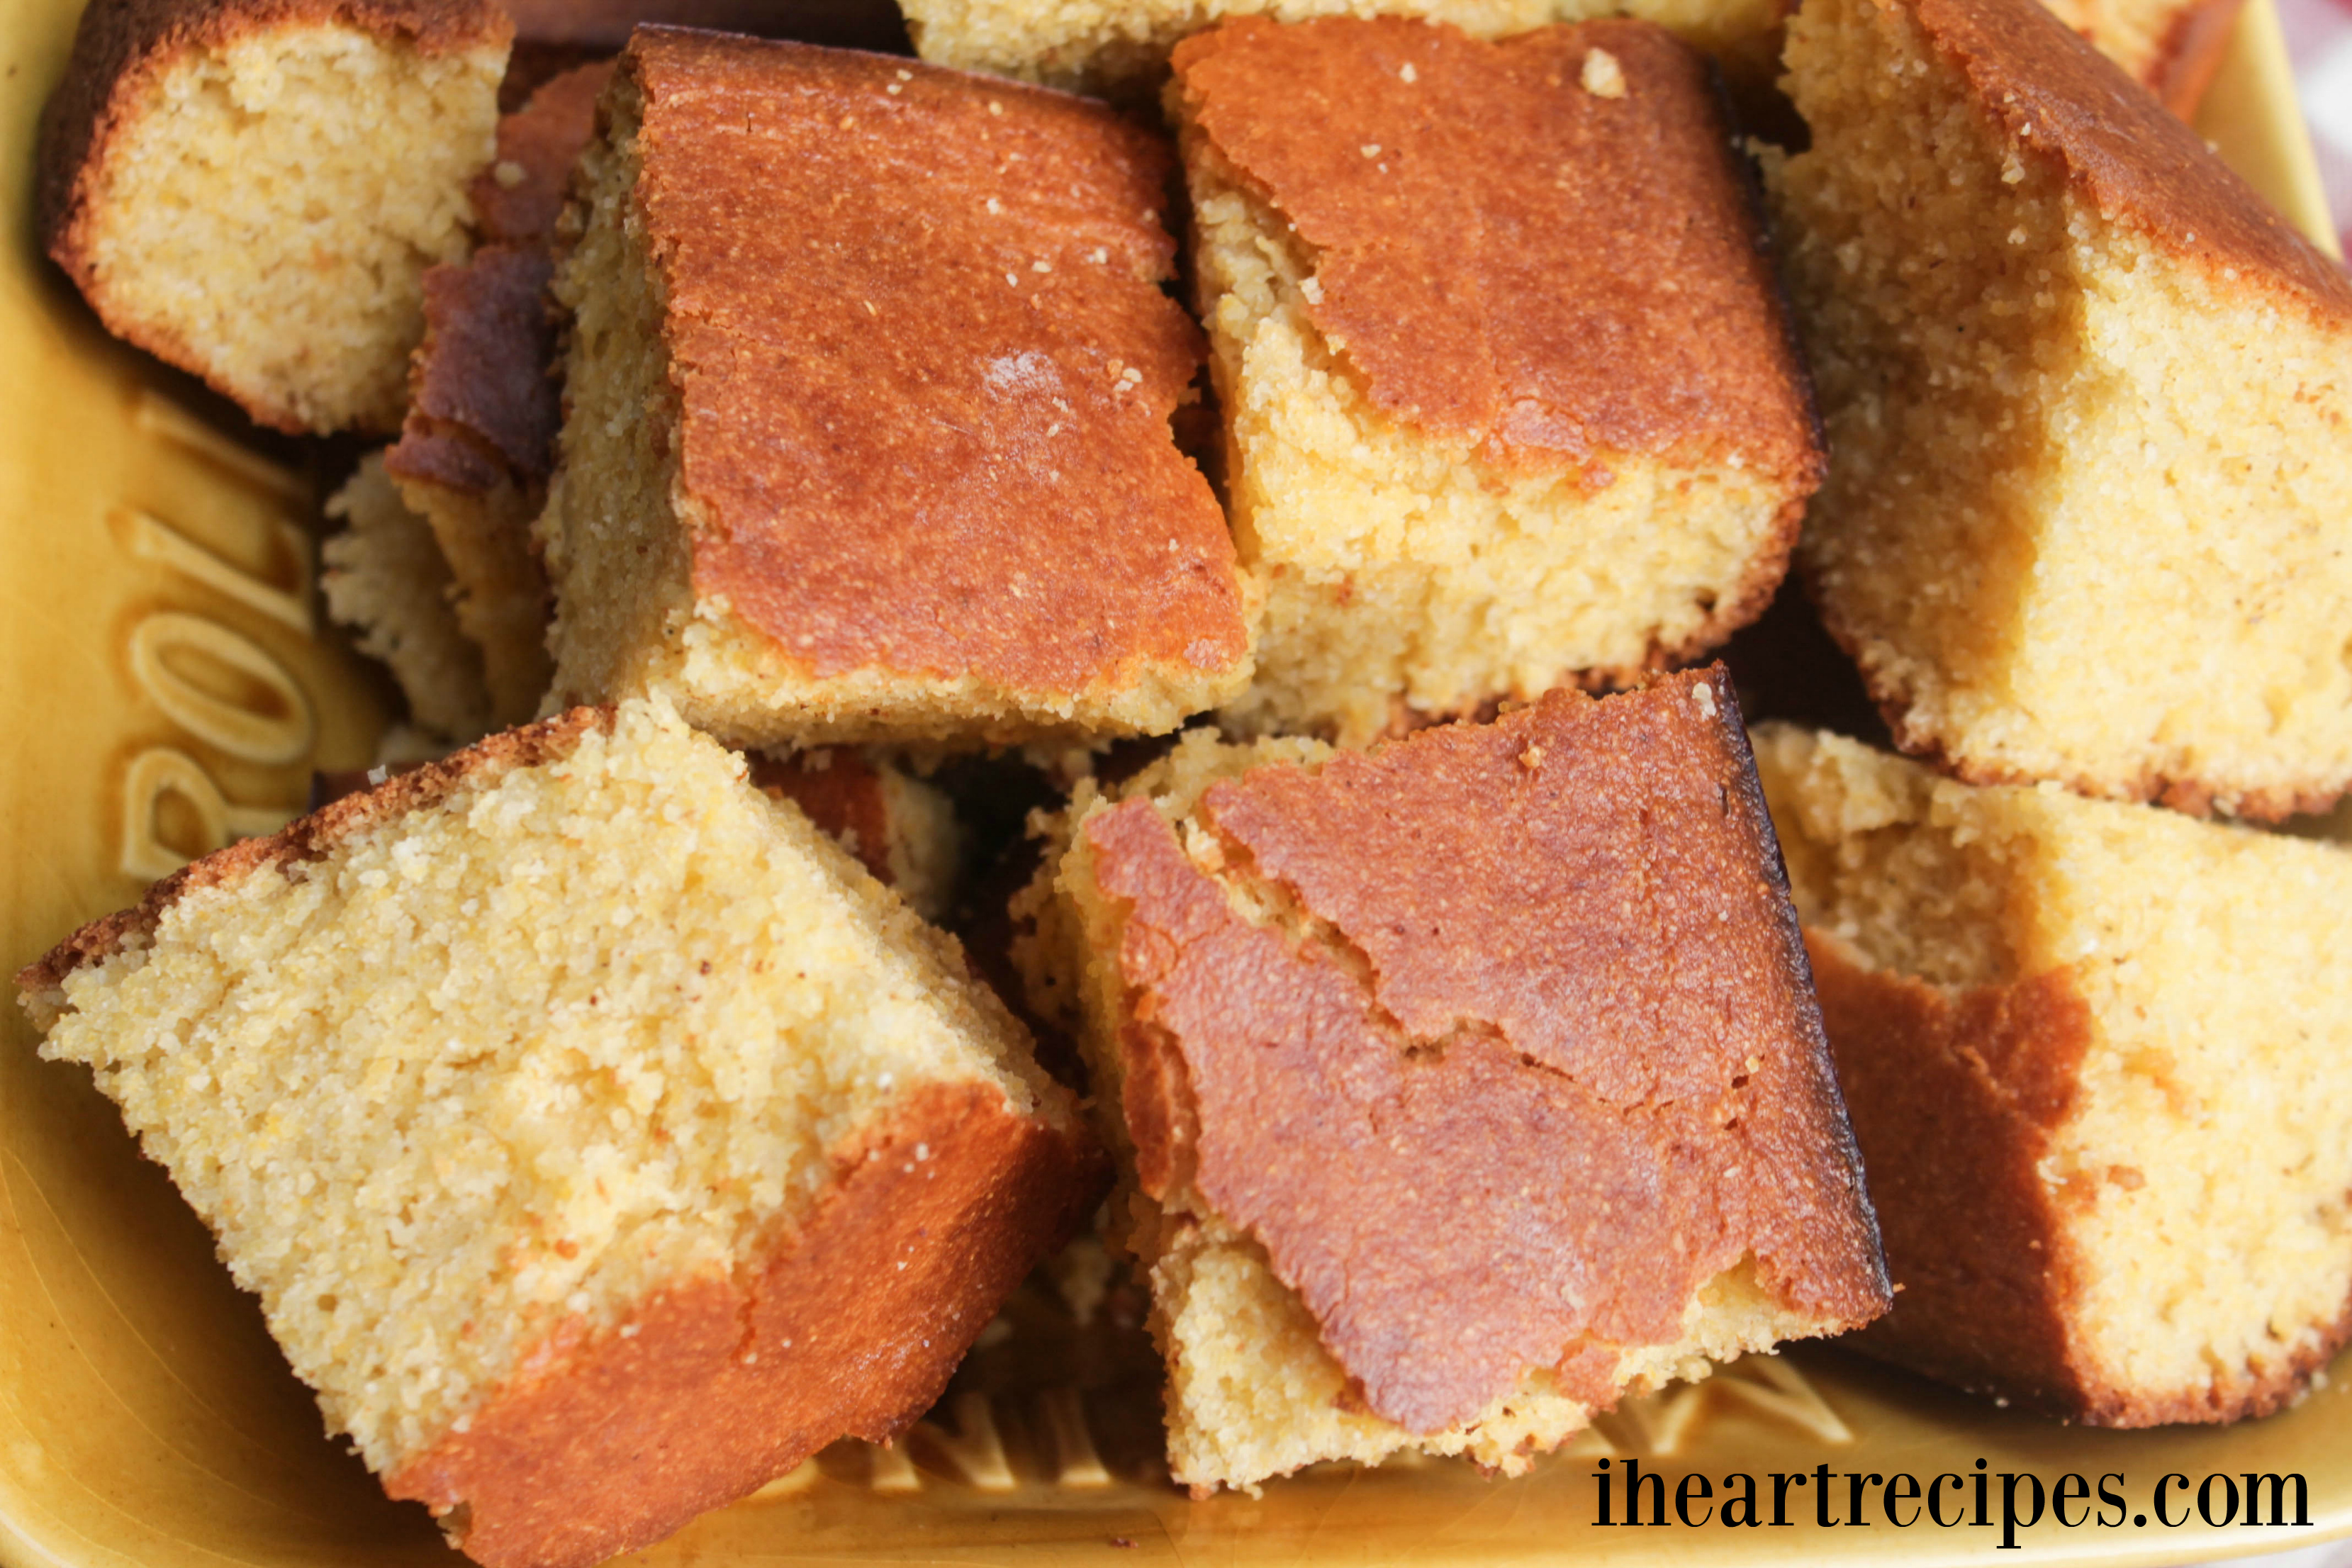 Moist and delicious southern style cornbread goes perfect with butter, collard greens, mashed potatoes... anything!